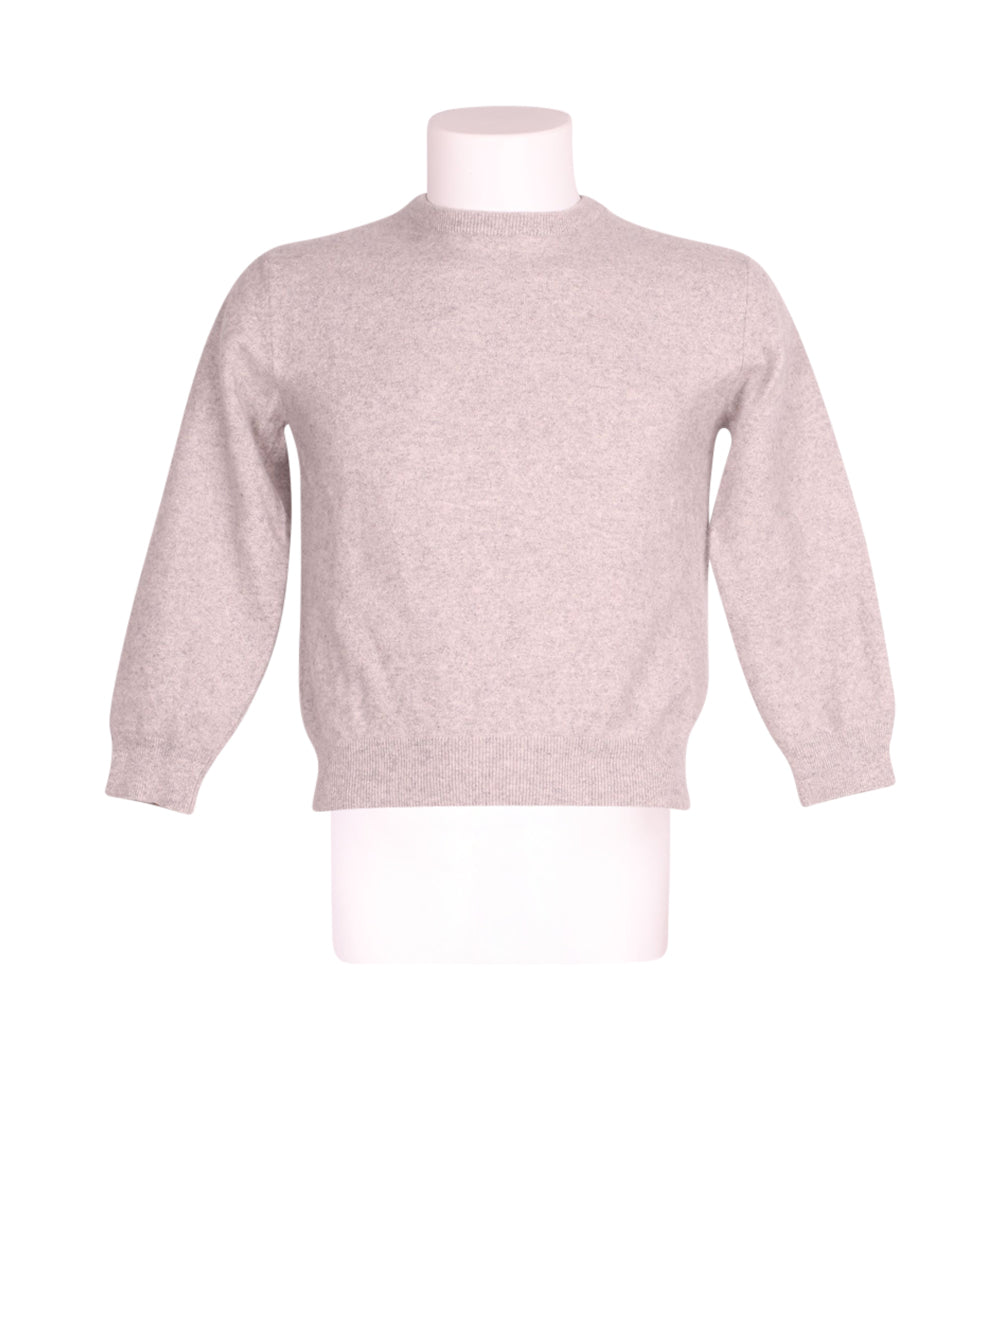 Front photo of Preloved Pierre Cardin Grey Man's sweater - size 38/M